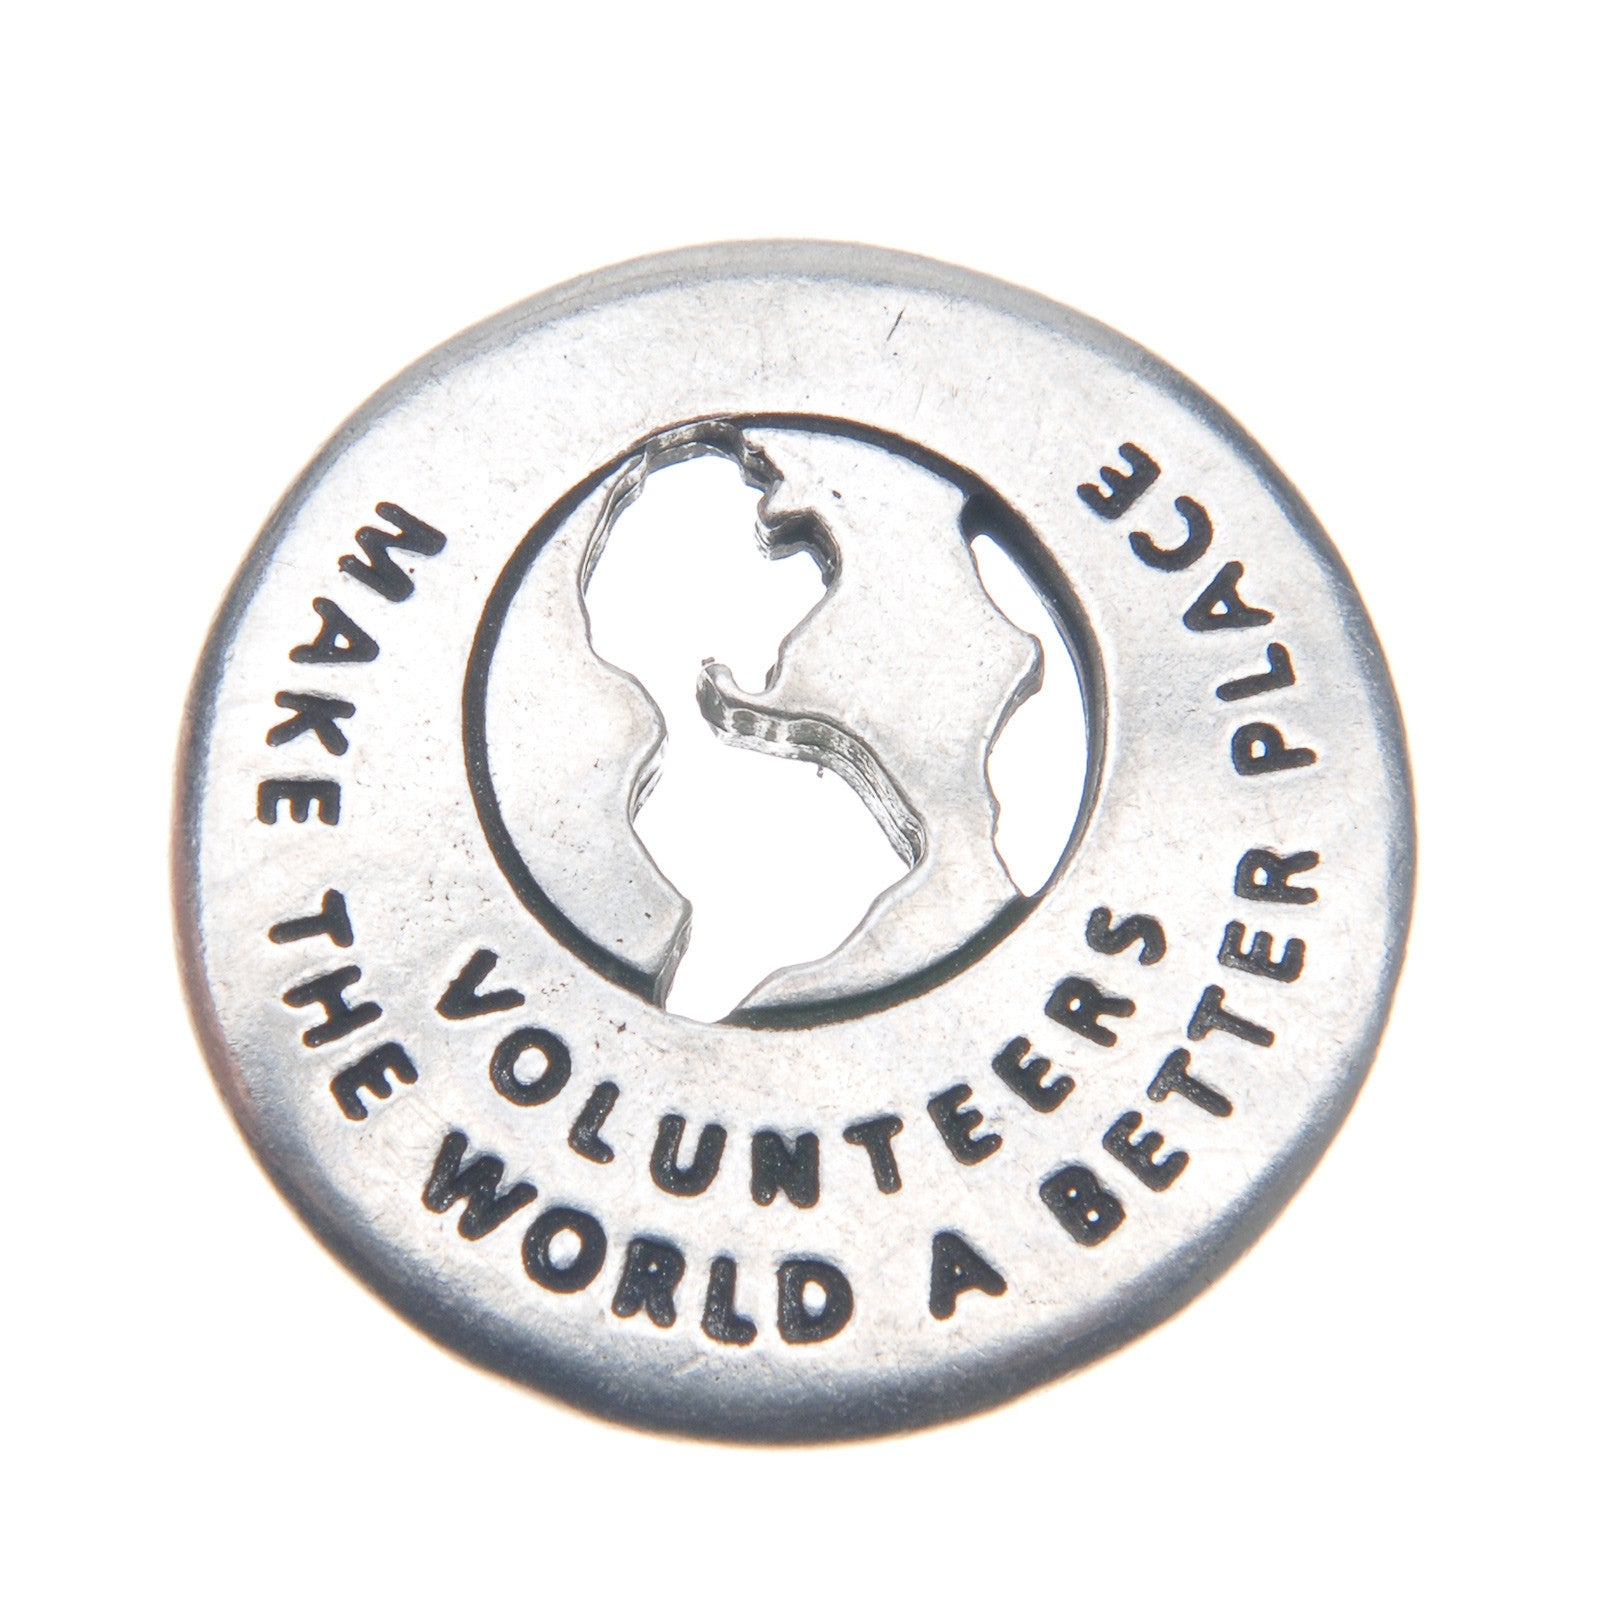 Volunteers Make The World A Better Place Volunteer Ring - Whitney Howard Designs